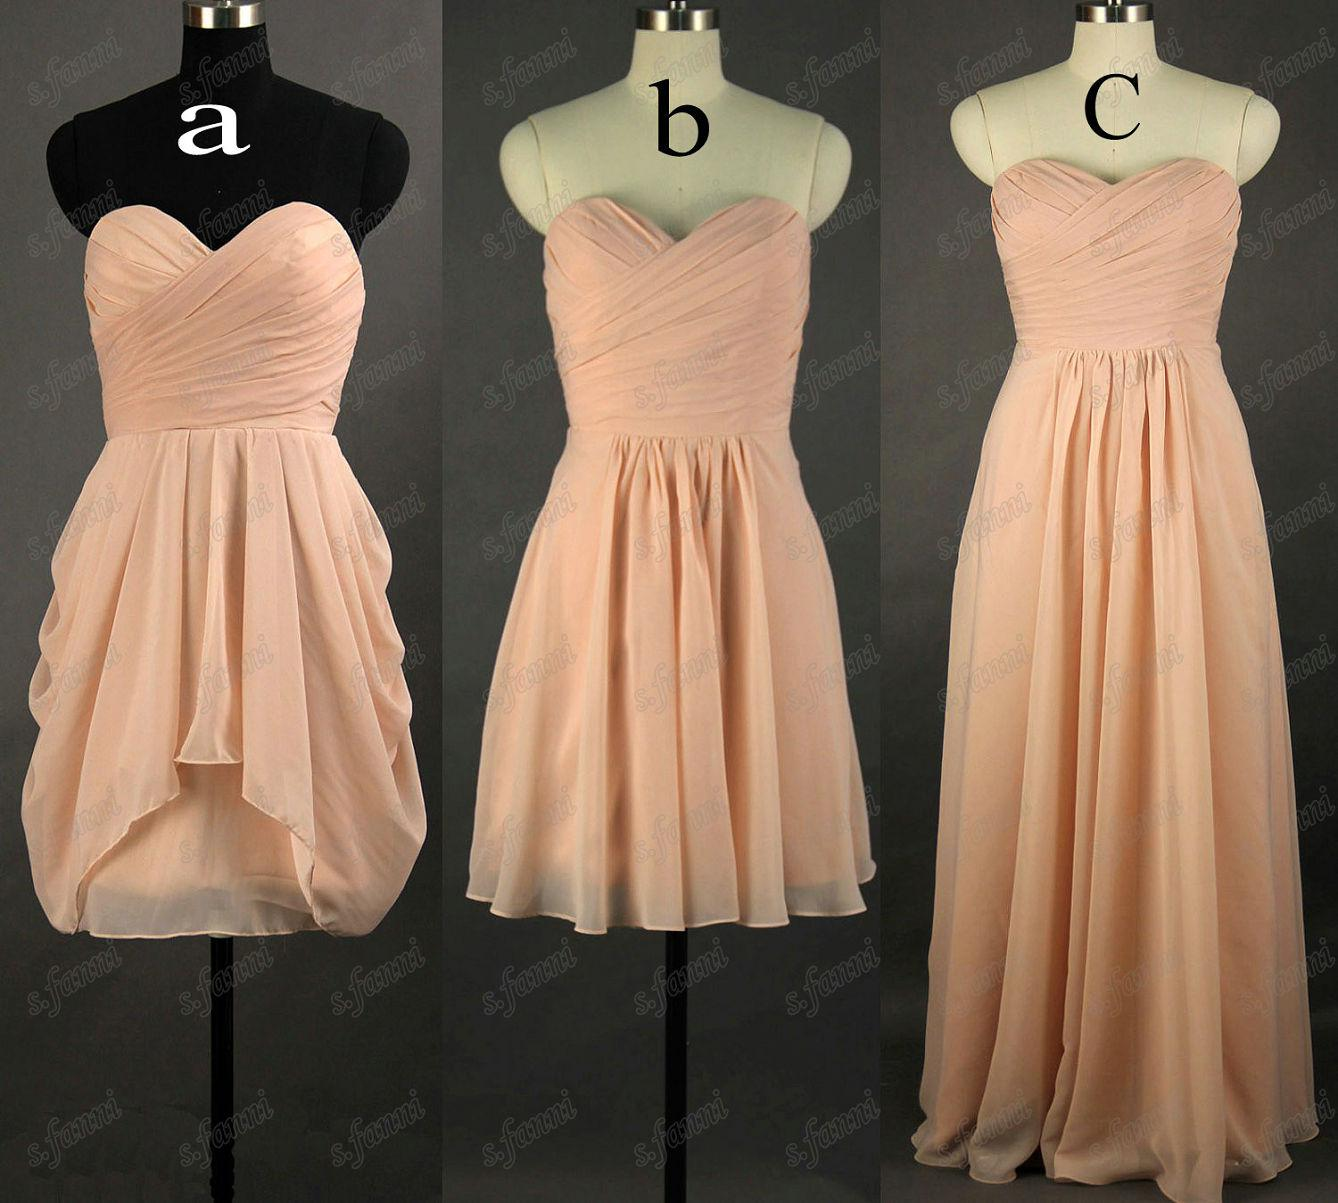 Discount High Quality Strapless Knee Length Chiffon Bow Coral Bridesmaid Dress